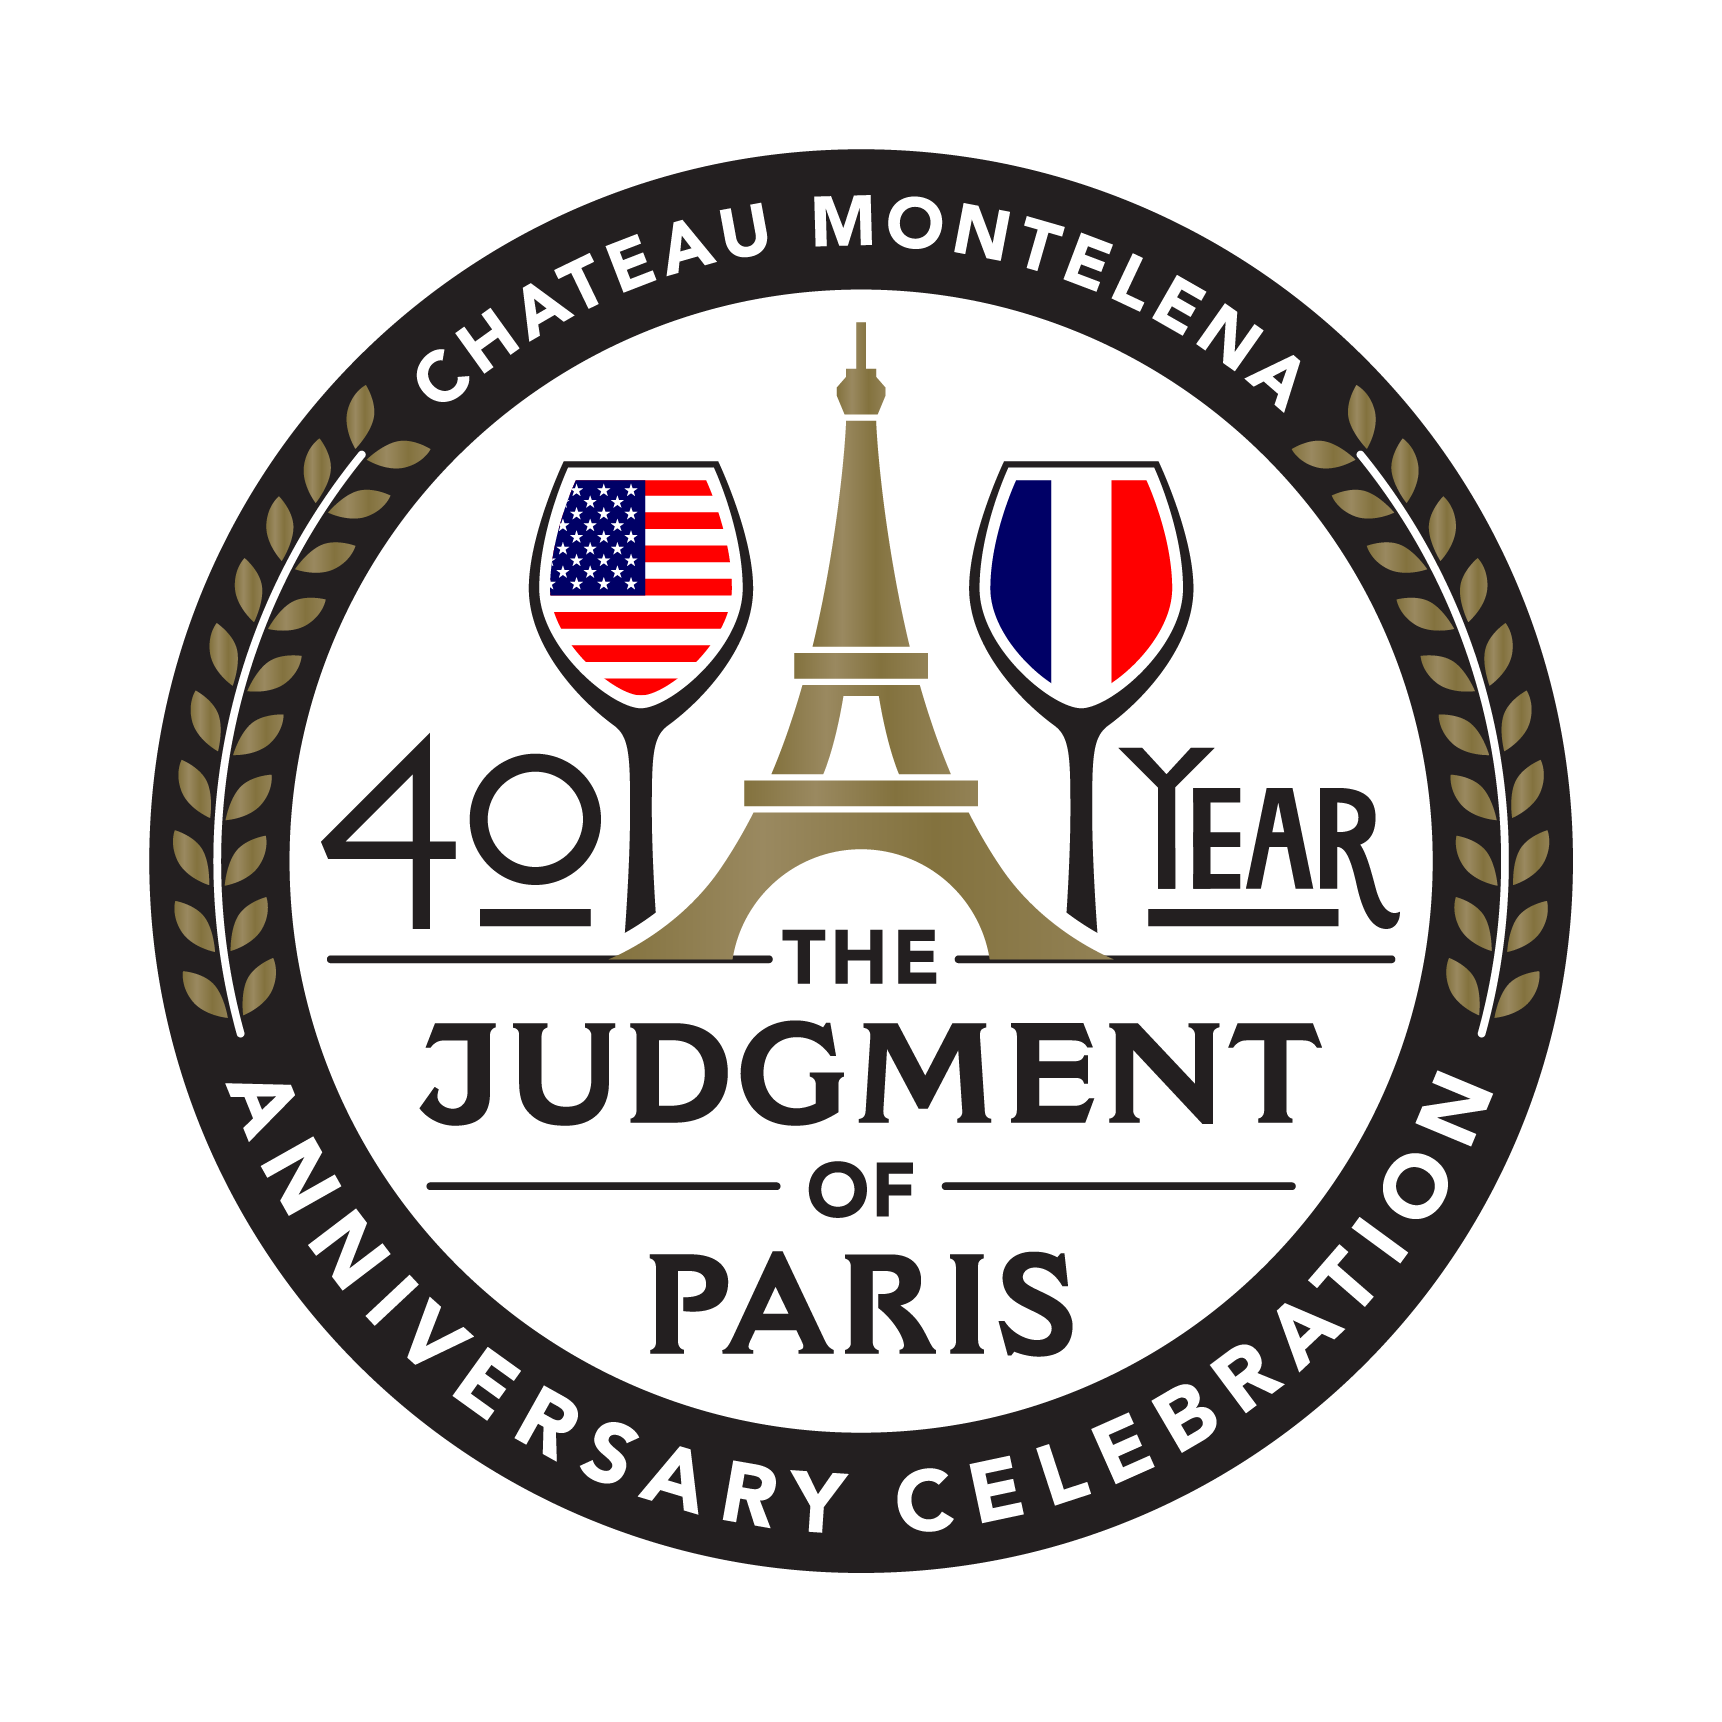 The 40th Anniversary Of The Judgment Of Paris Chateau Montelena Winery